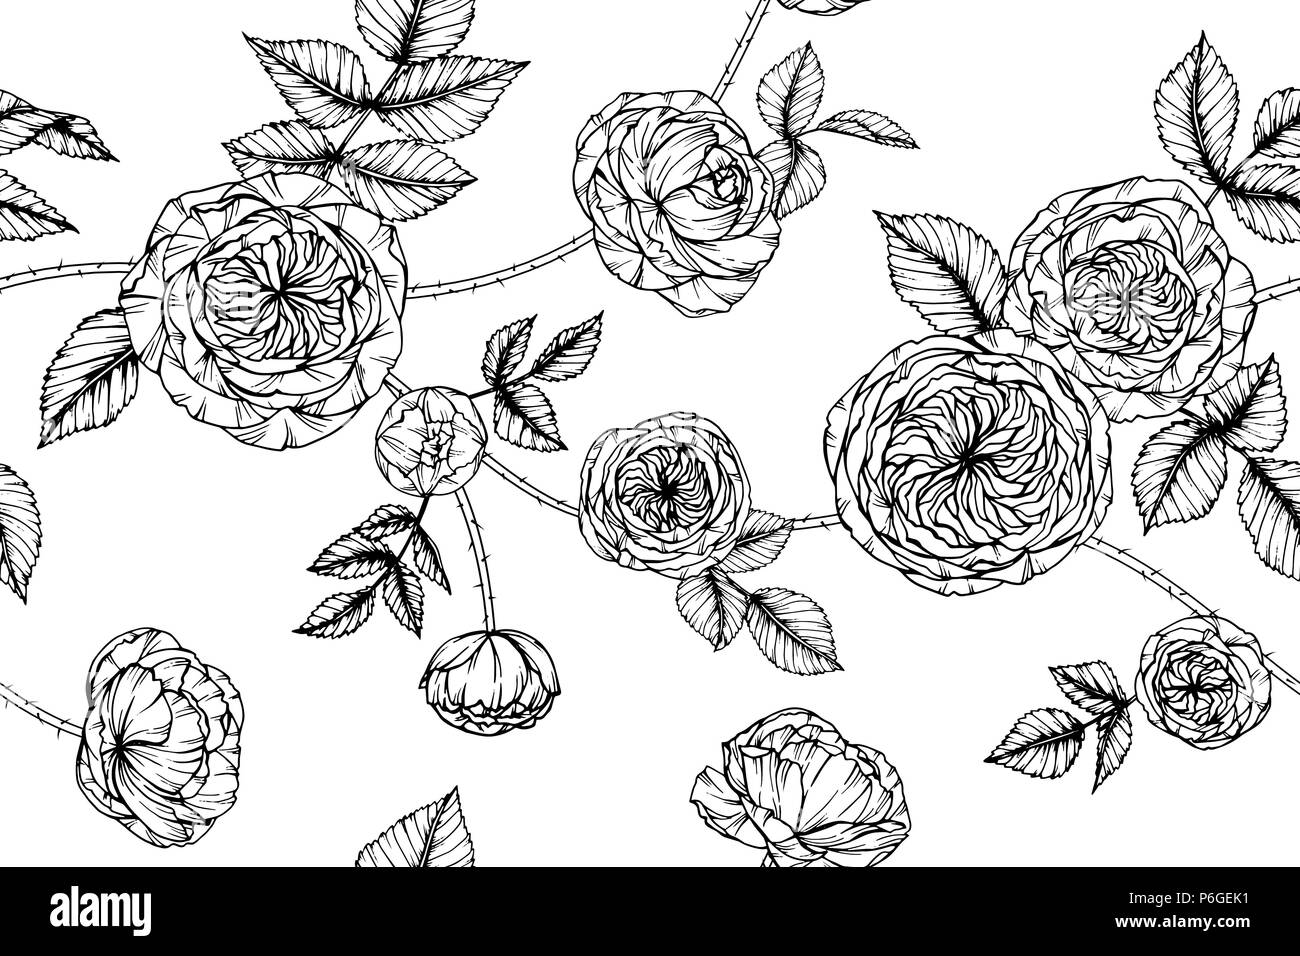 Seamless Rose Flower Pattern Background Black And White With